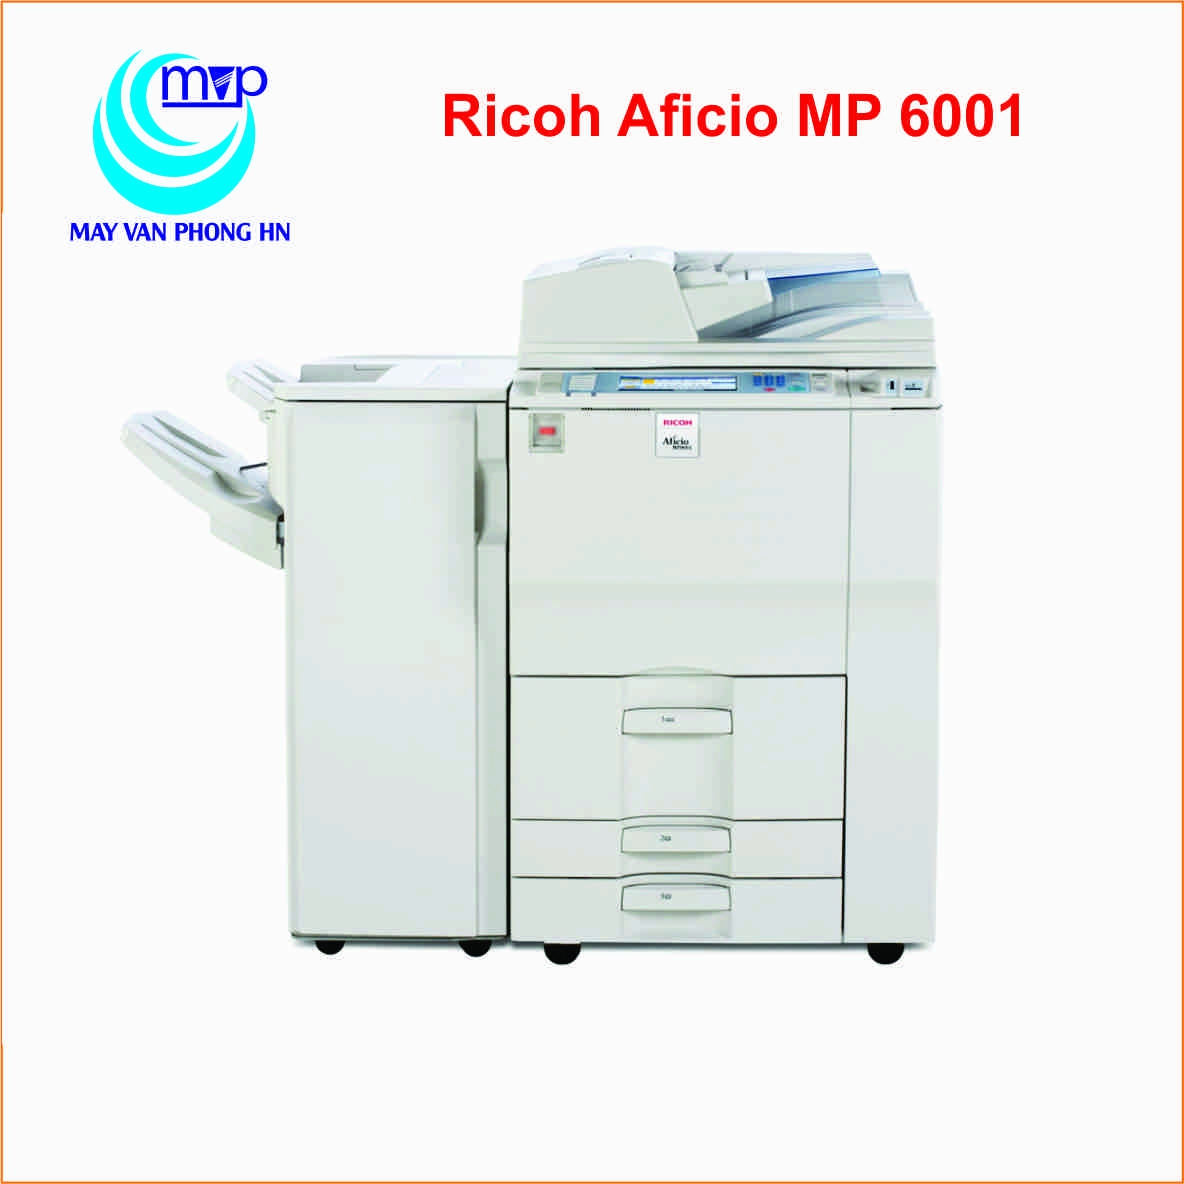 Ricoh Aficio MP 6001